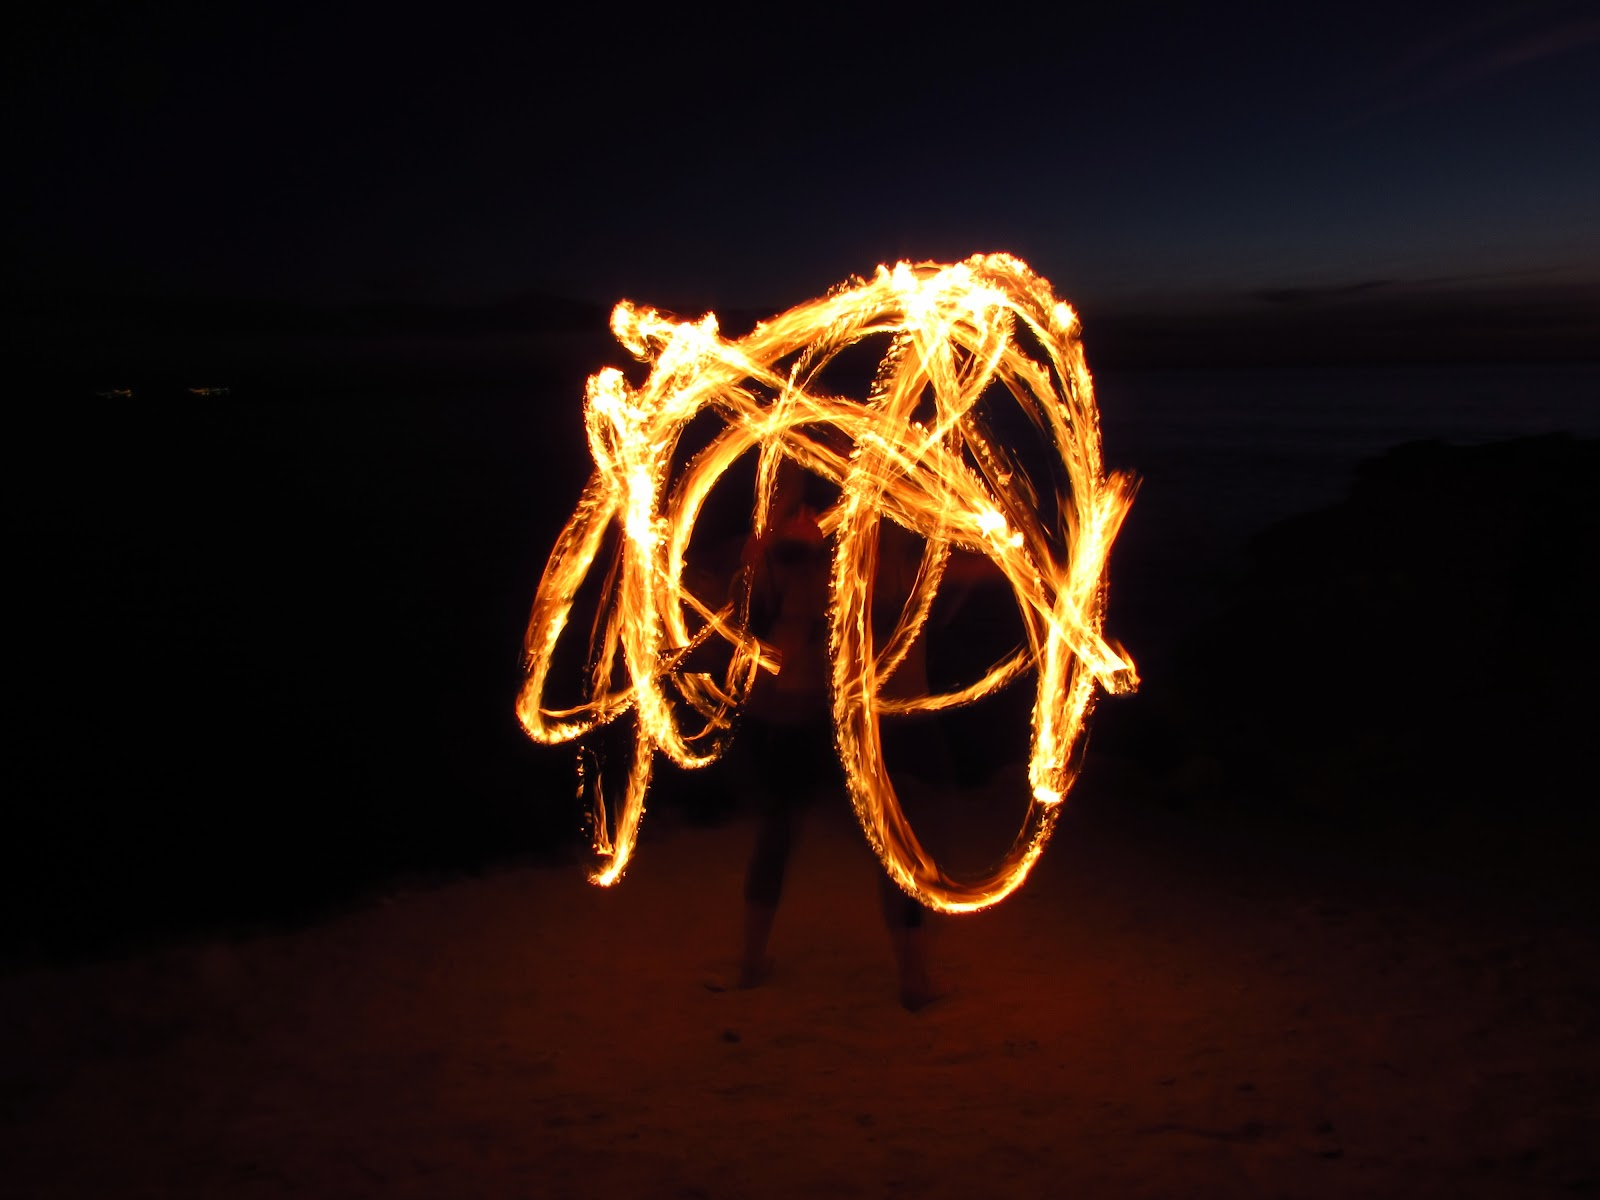 photo of a light source (likely a sparkler) waved around against a dark background to create a multi-lined light circle